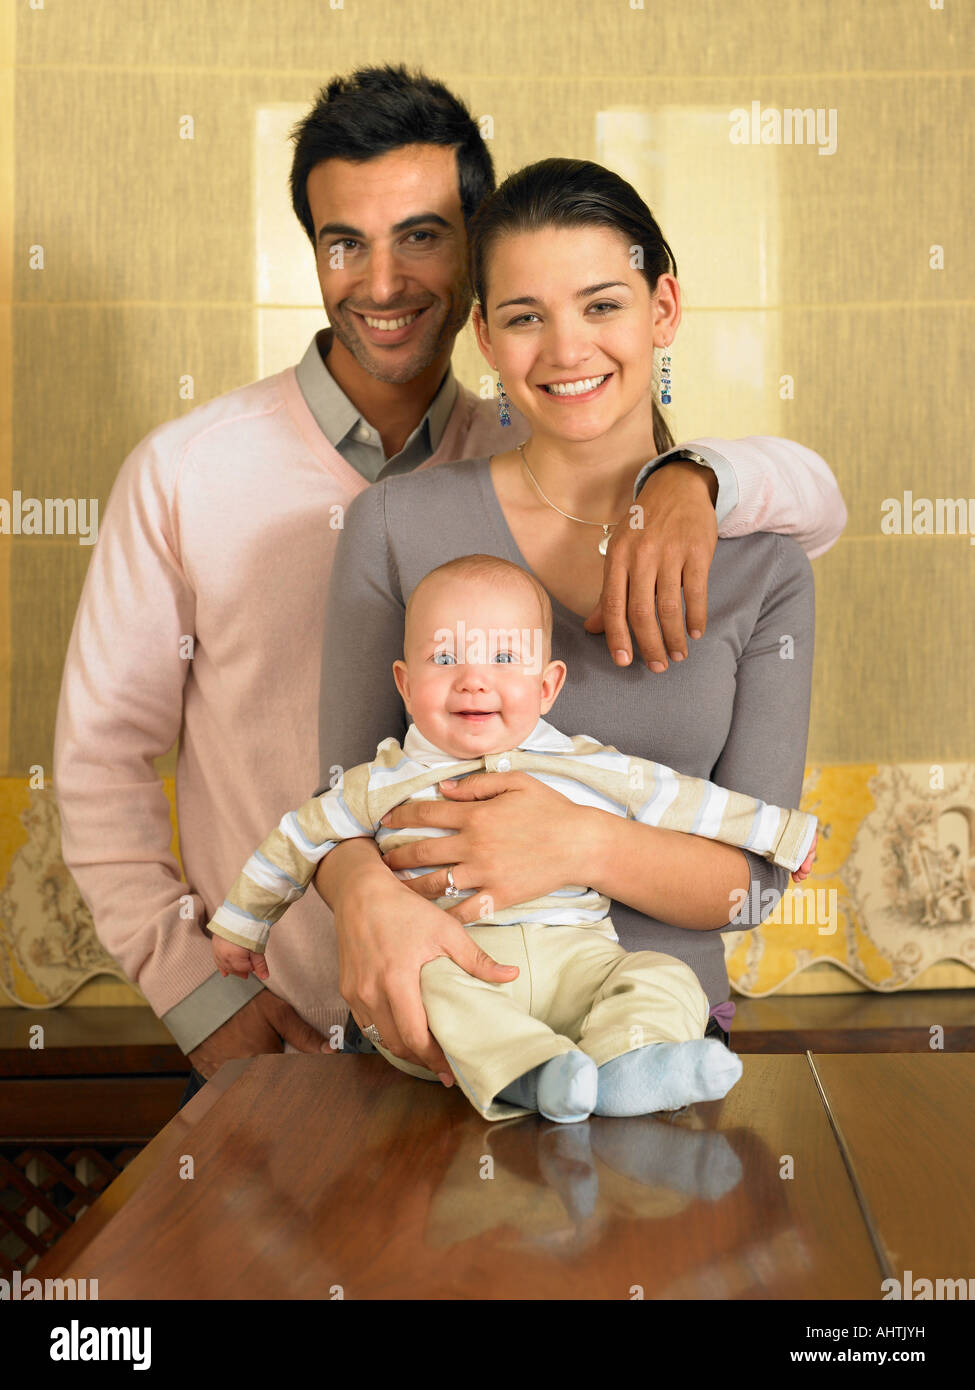 Young couple and baby son (1-3 months) smiling, portrait - Stock Image